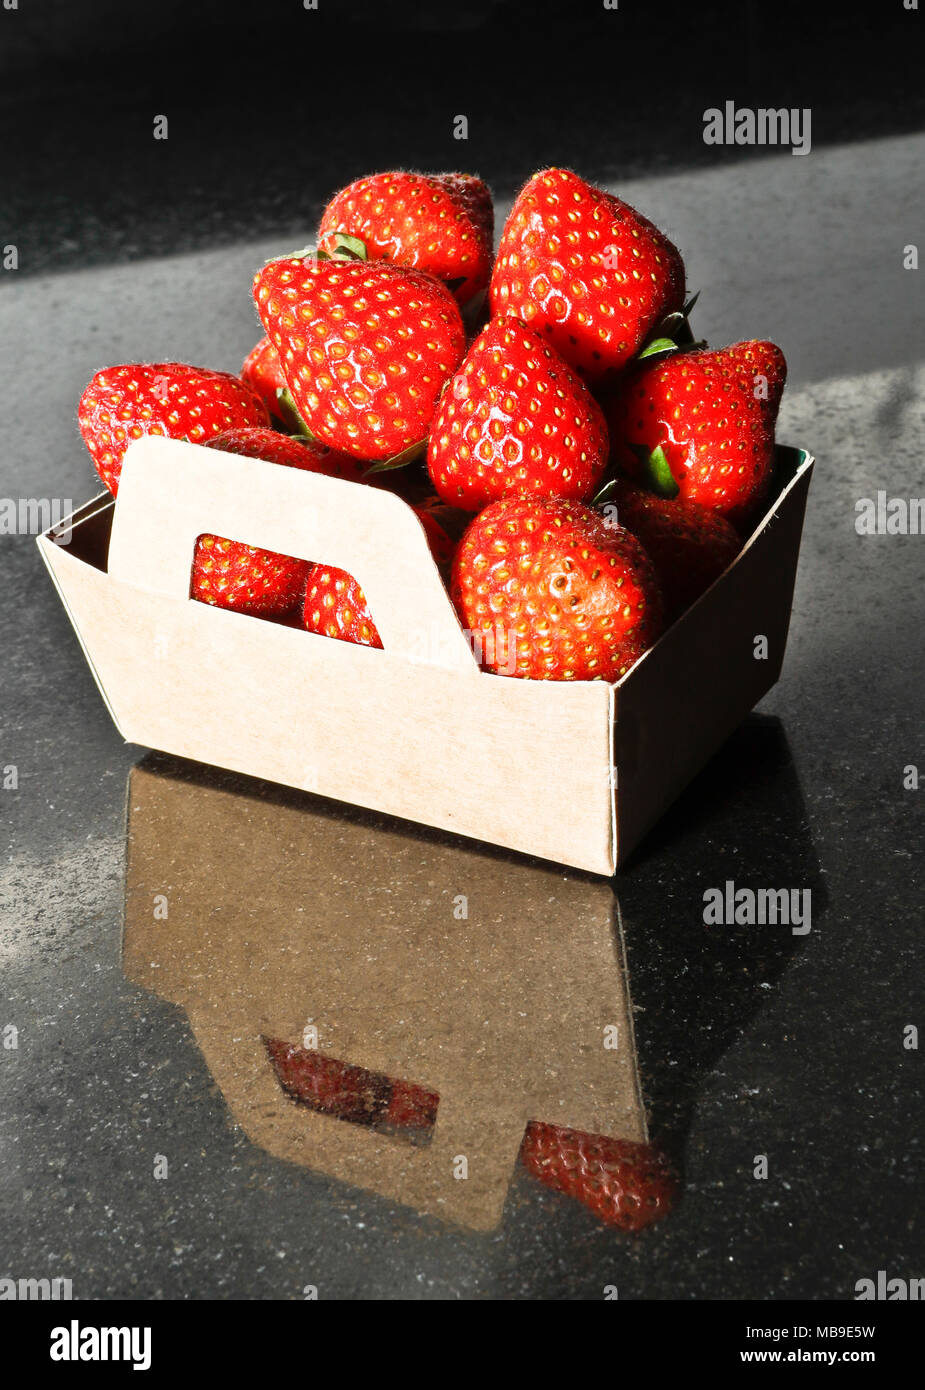 Strawberries in a box - Stock Image